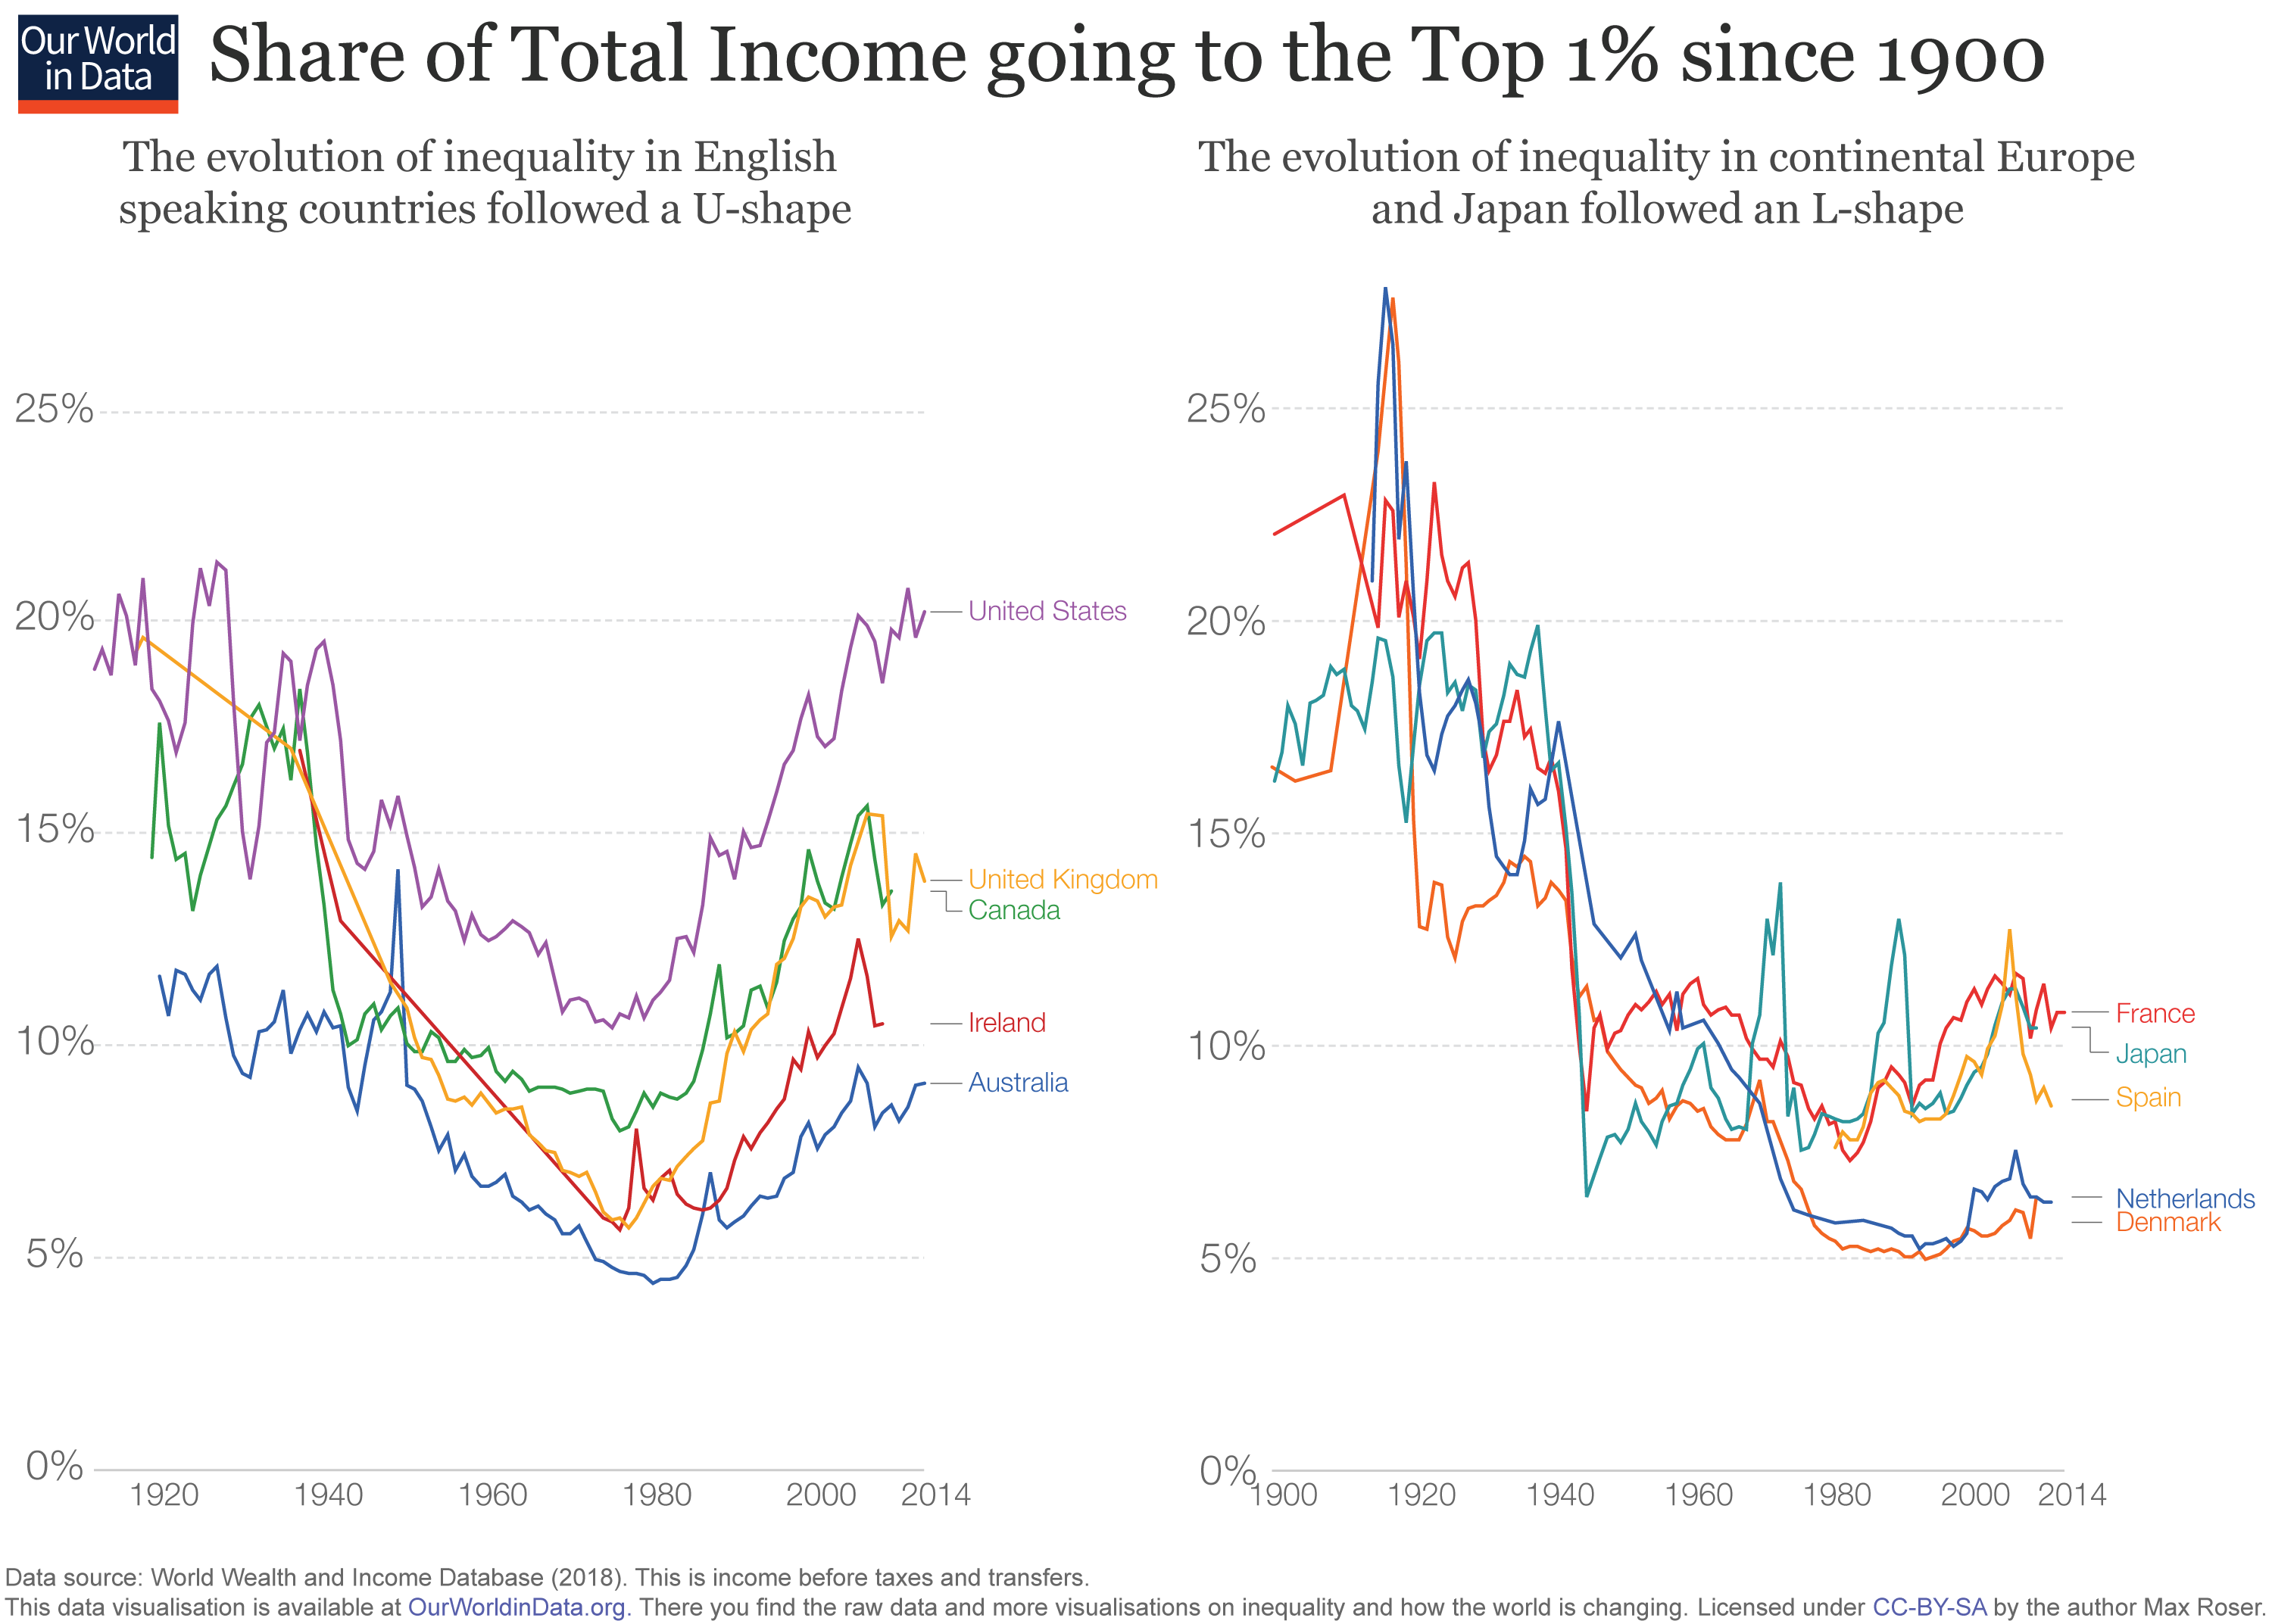 Is trade a major driver of income inequality? - Our World in